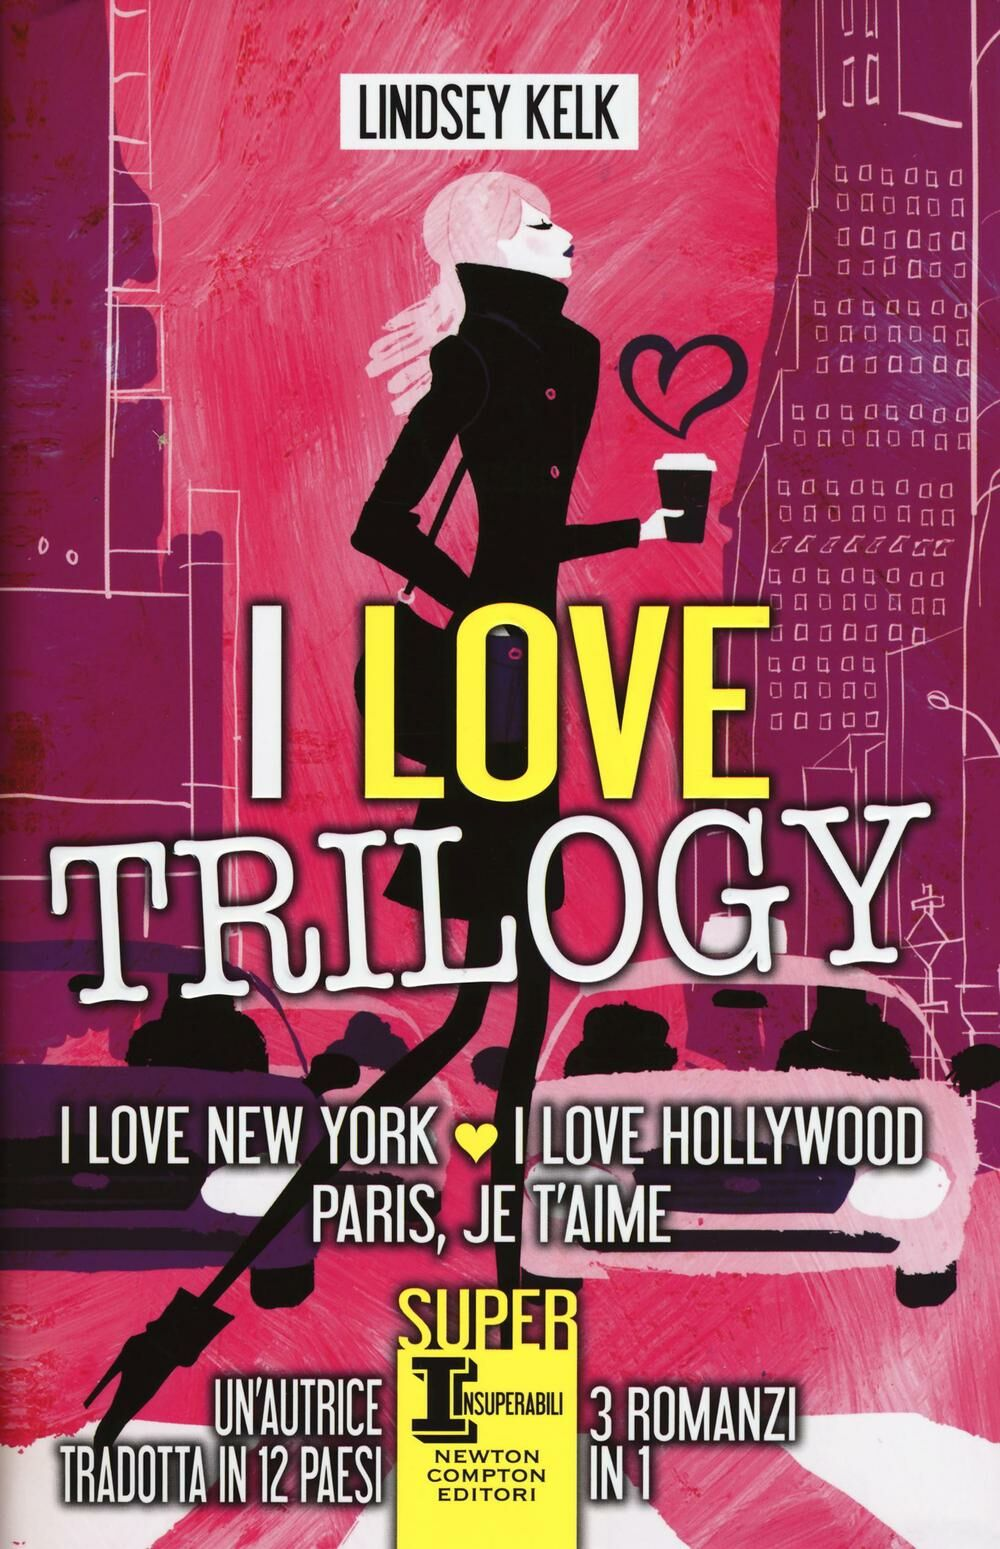 I love trilogy: I love New York-I love Hollywood-Paris je t'aime